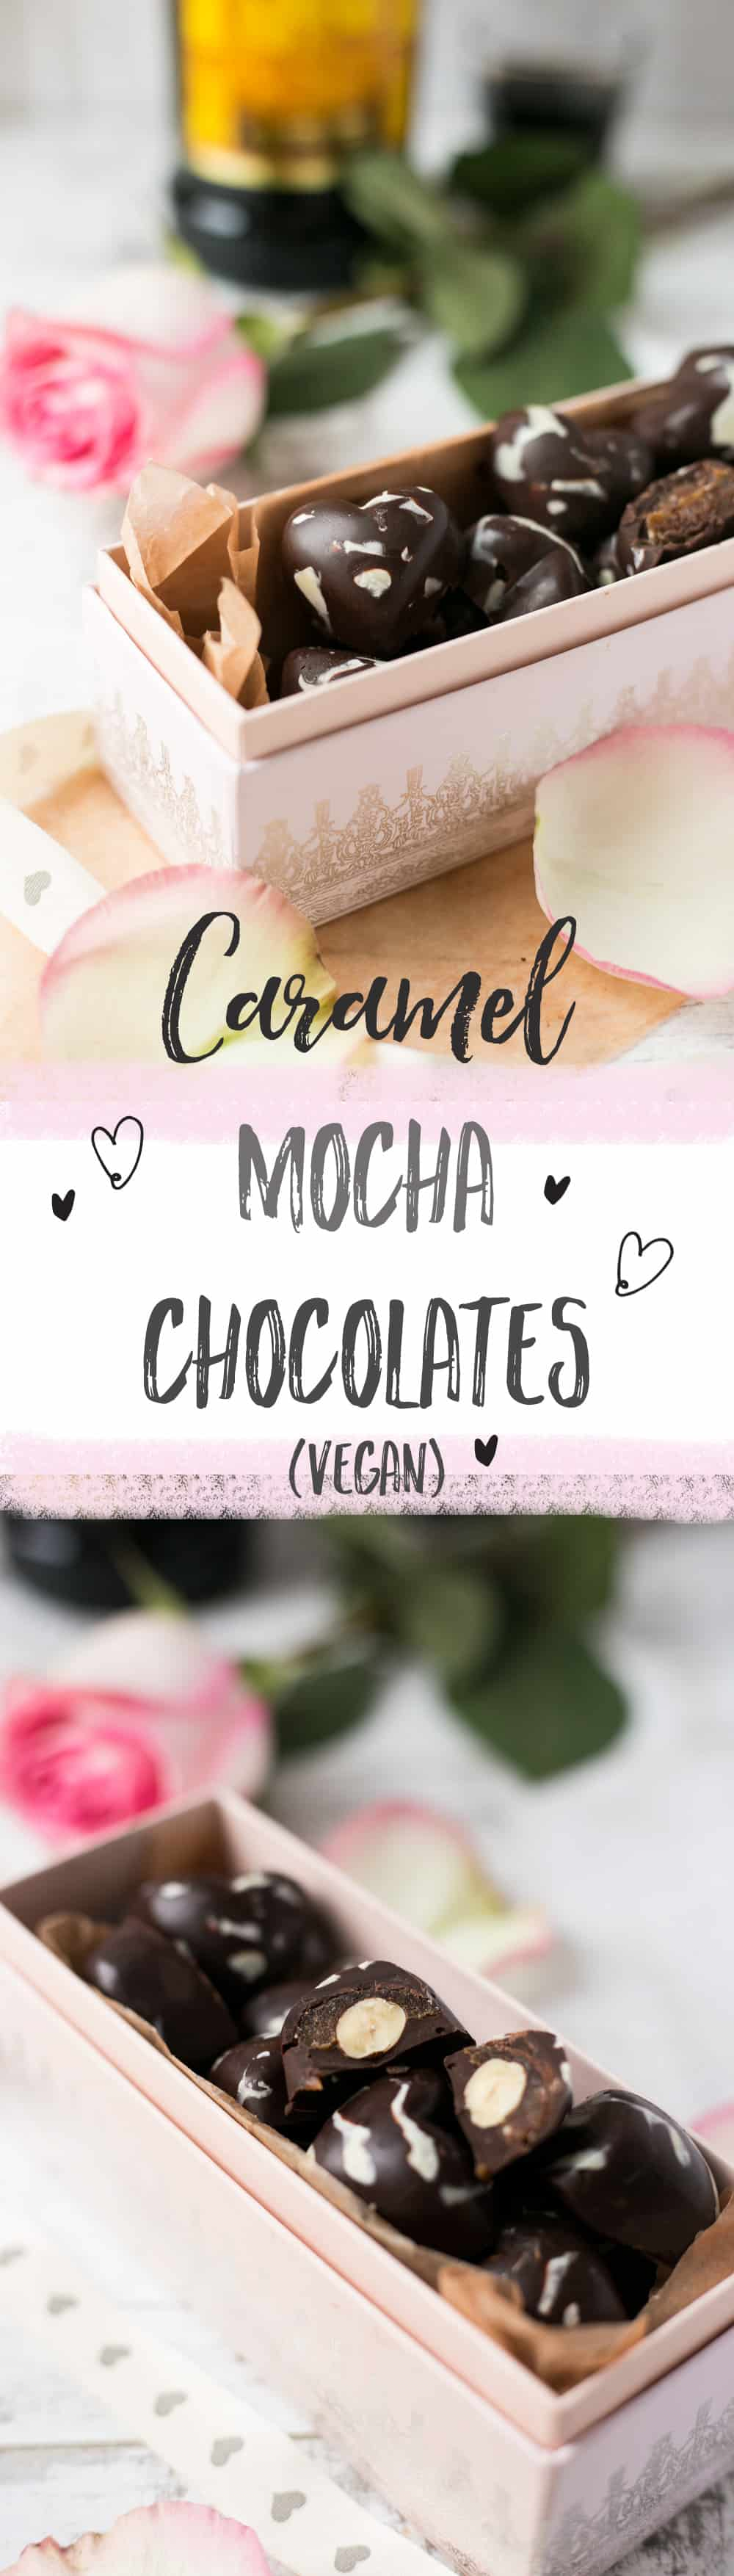 Caramel Mocha Chocolates. Perfect gift for Valentine's Day! | via @annabanana.co